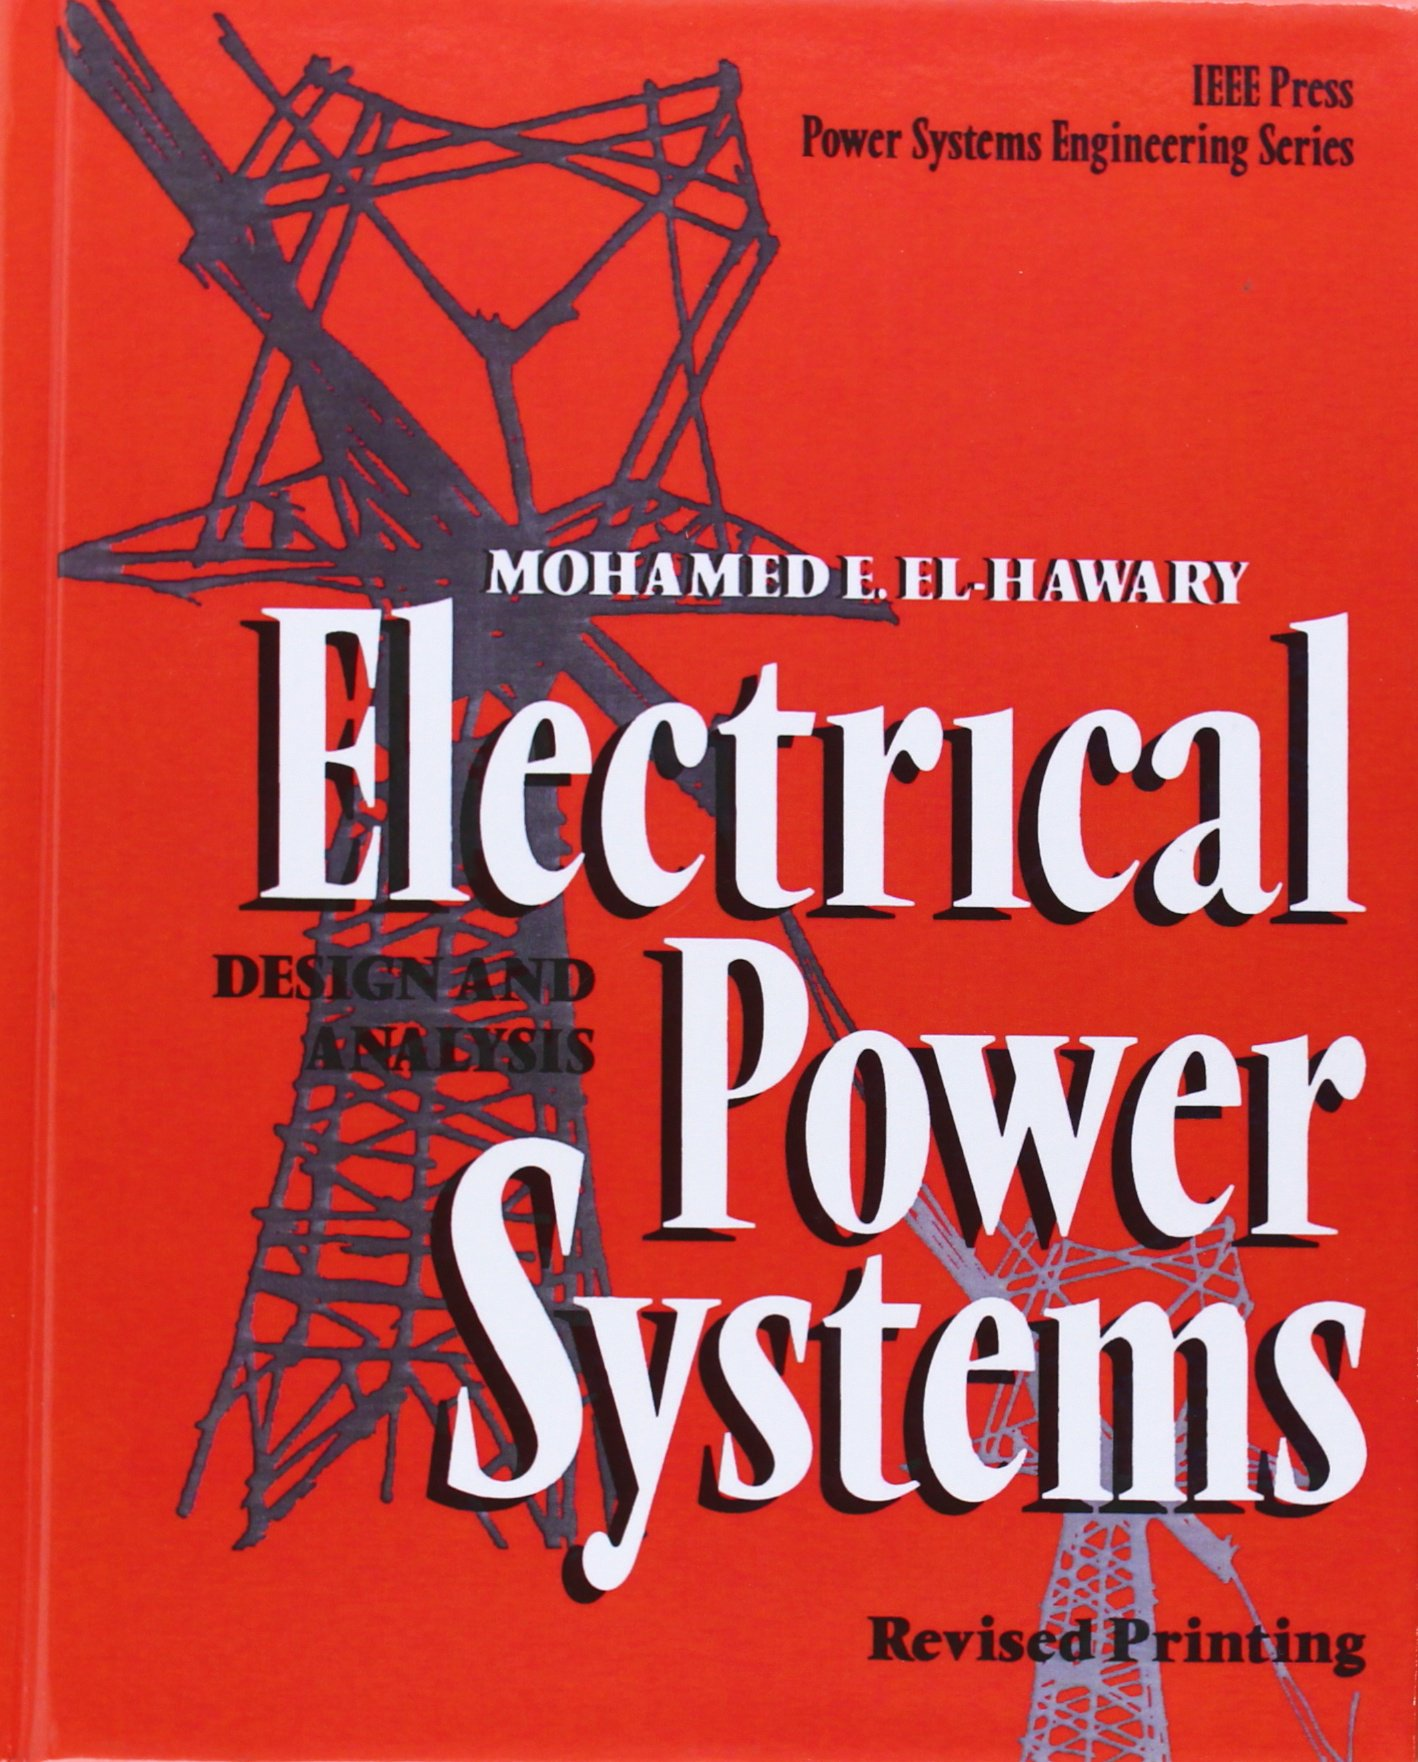 Electrical Power Systems: Design and Analysis: Mohamed E. El-Hawary:  9780780311404: Books - Amazon.ca